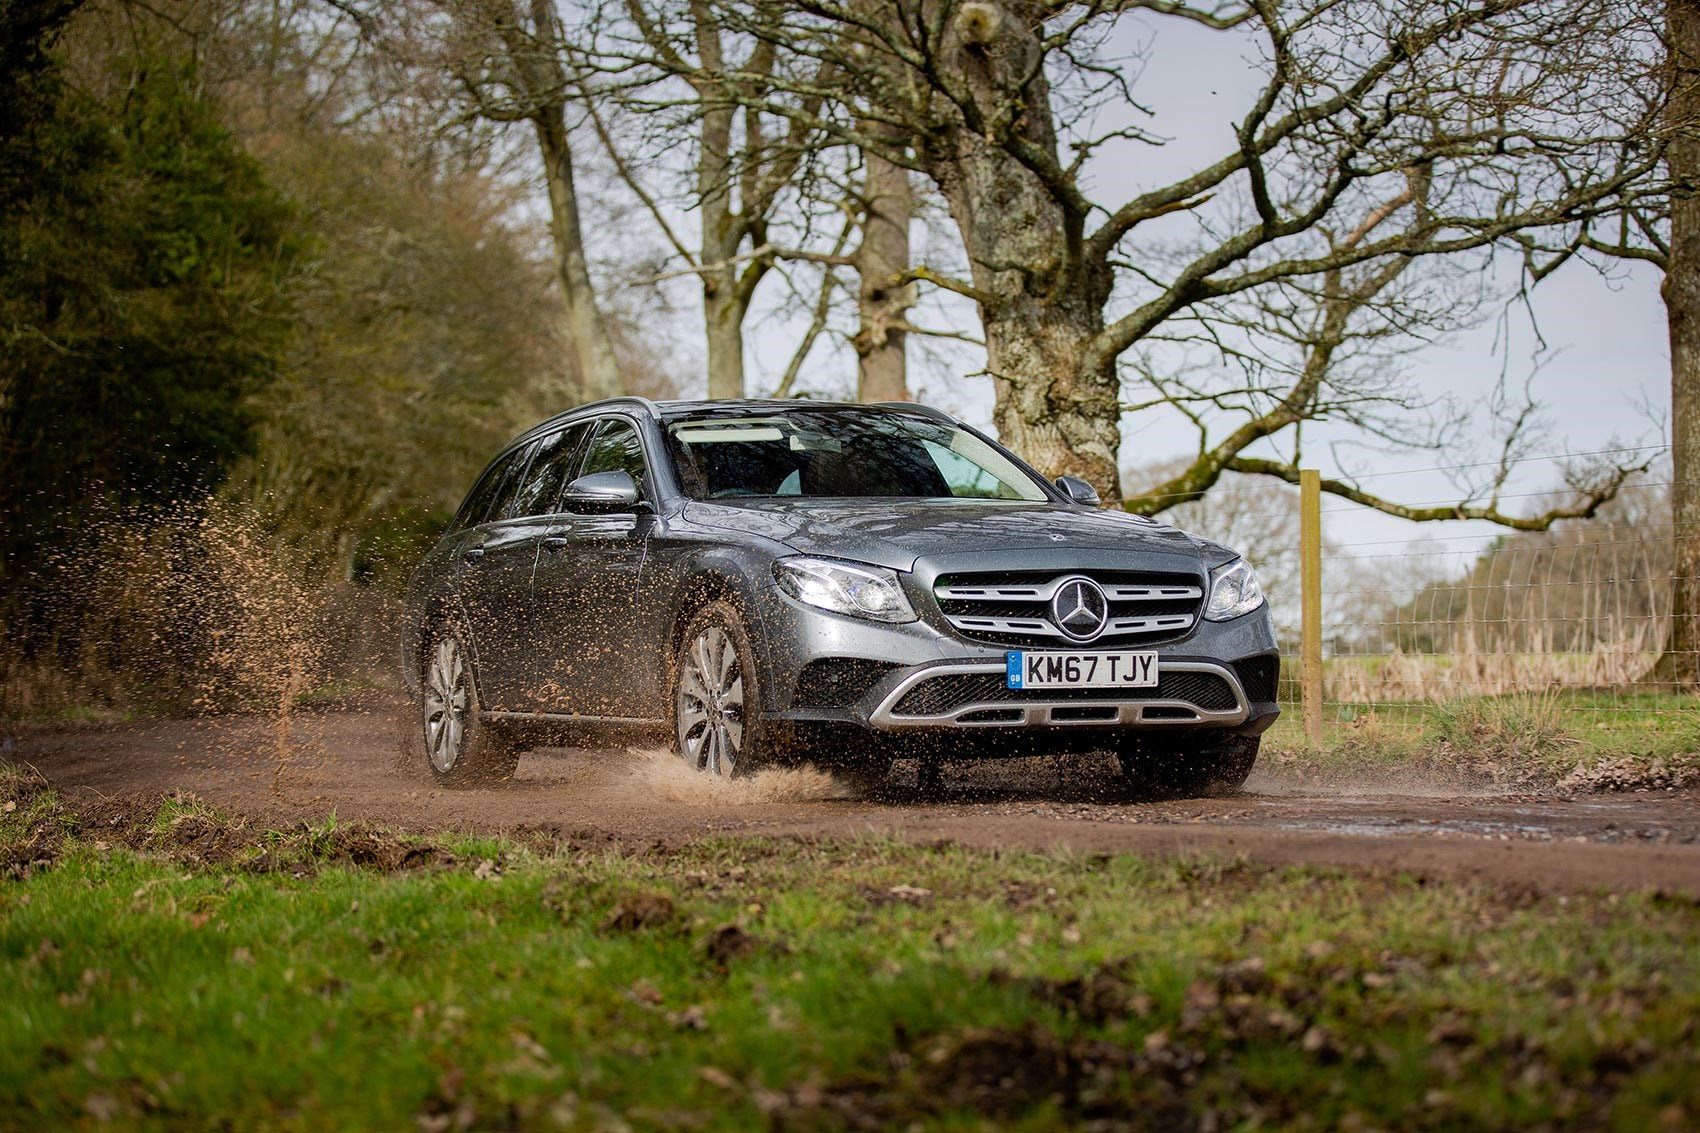 Mercedes E350d 4Matic All-Terrain (2019) long-term test